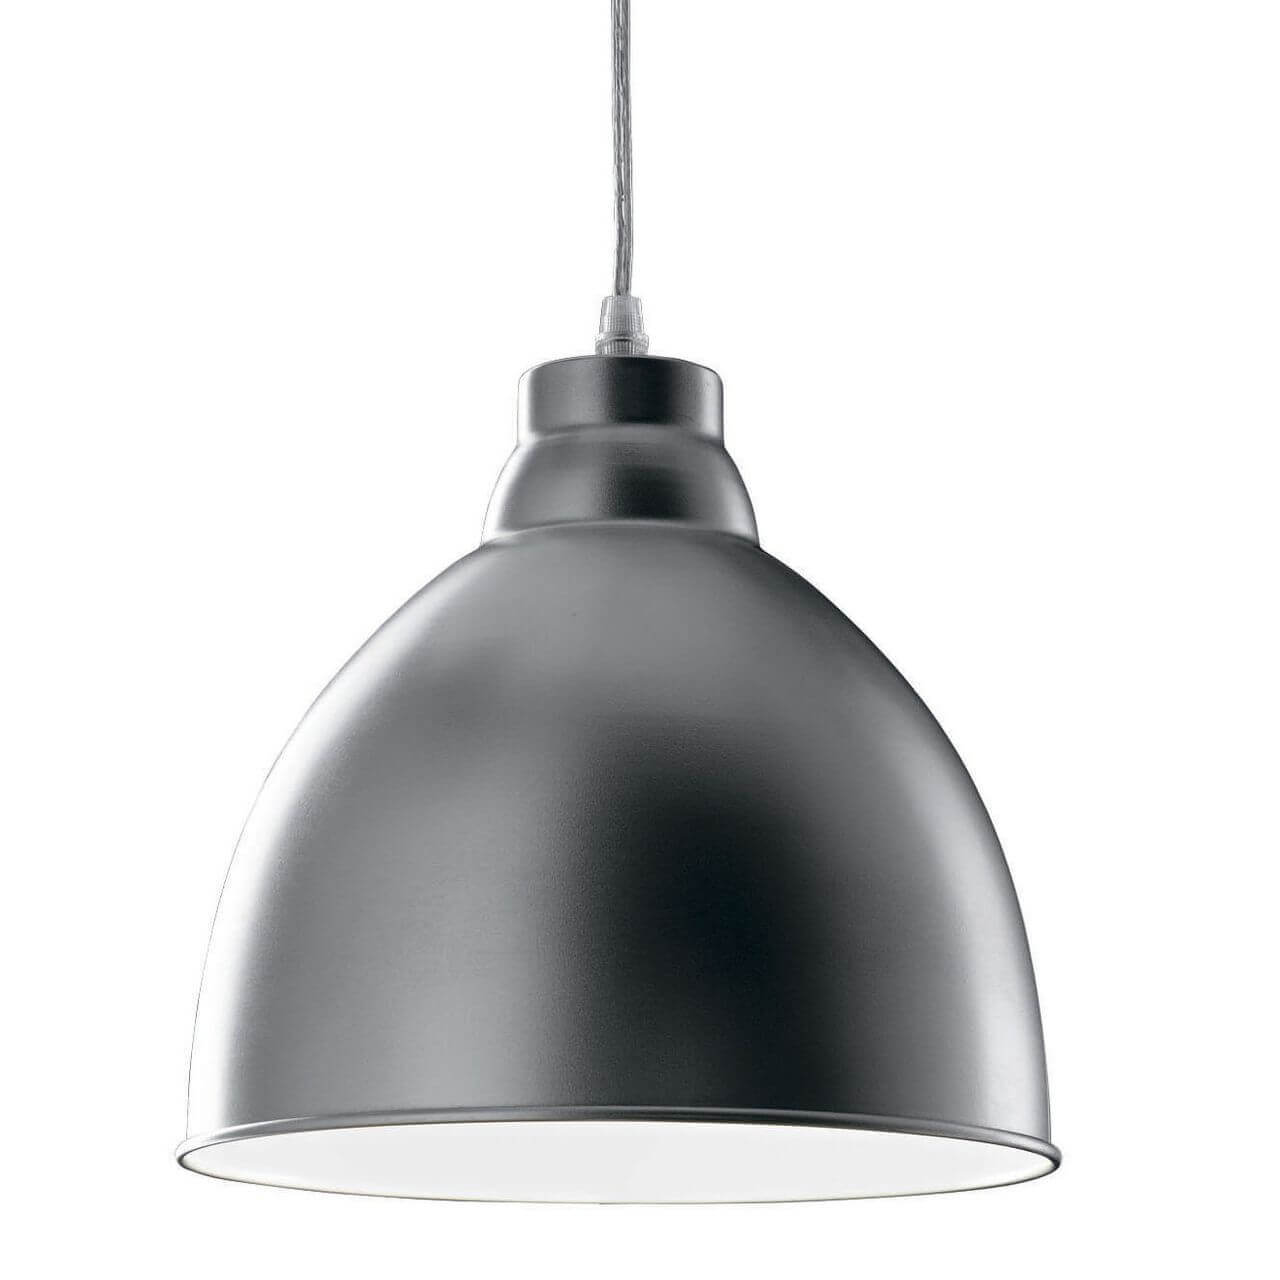 Светильник Ideal Lux Navy SP1 Alluminio Navy подвесной светильник ideal lux wheel sp3 009681